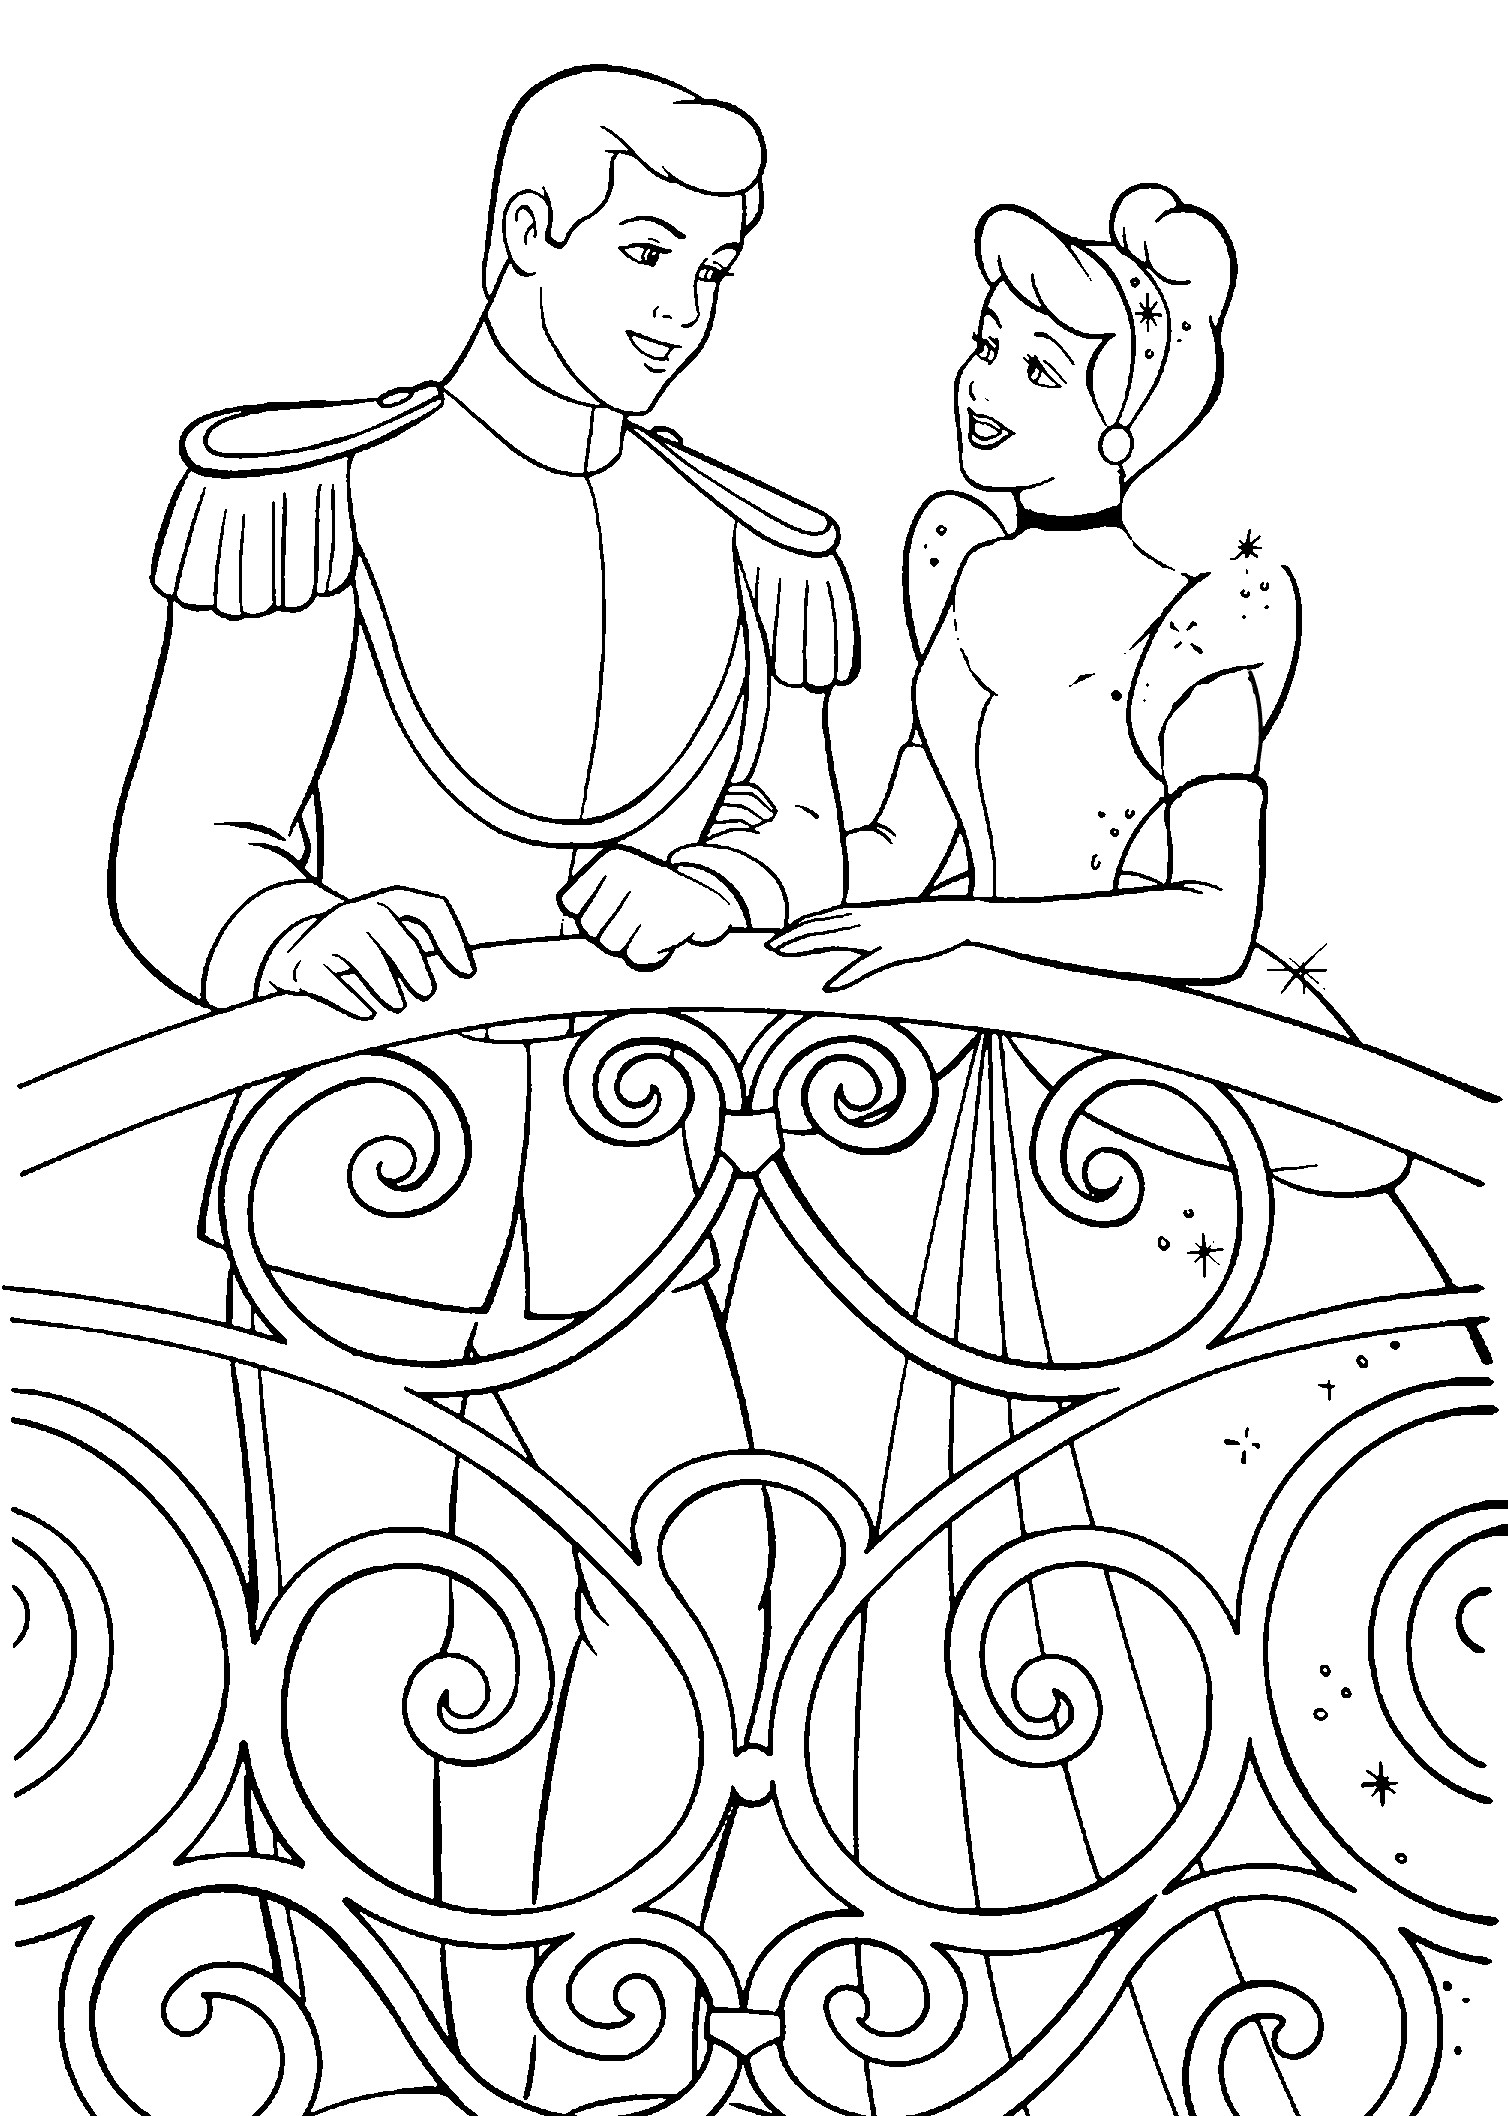 Wedding Coloring Pages Free Printable 9k - Save it to your computer